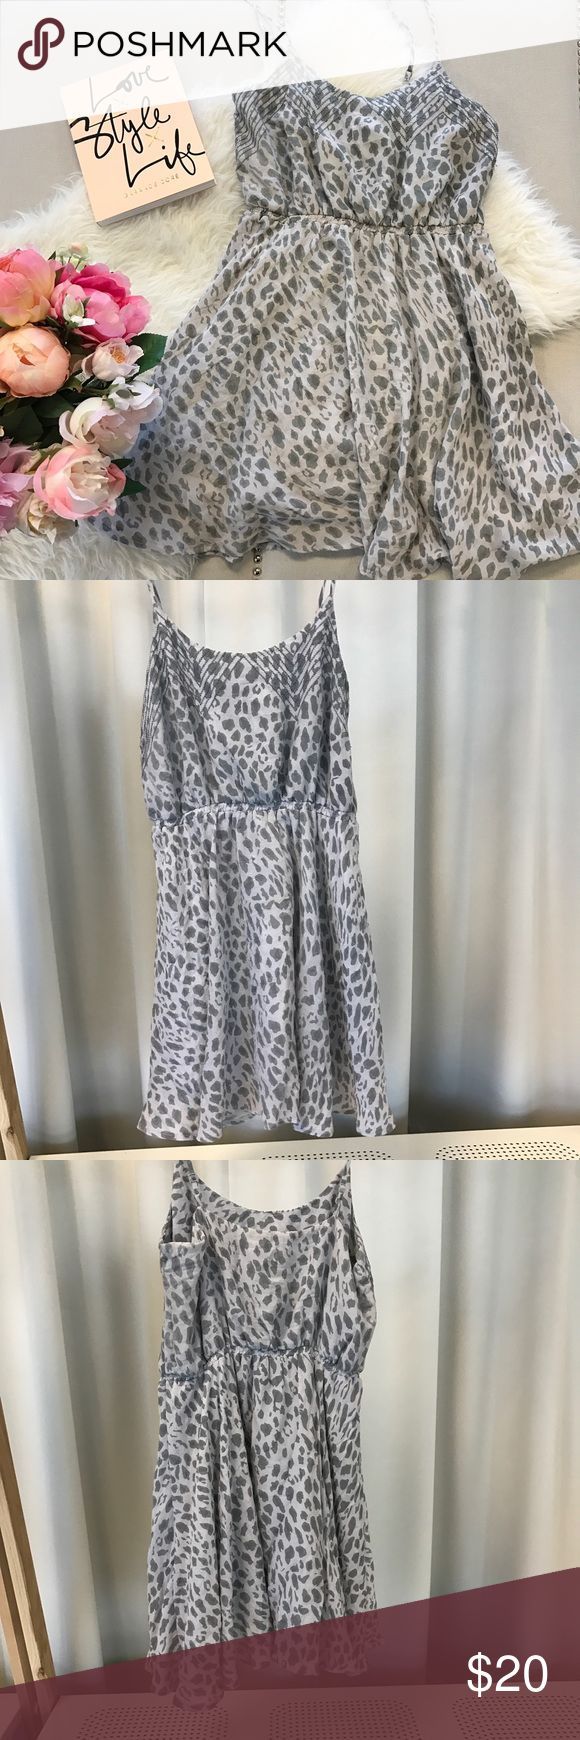 Grey Cheetah Print Dress Urban Outfitters cute cheetah print dress. In good condition only worn twice. Urban Outfitters Dresses